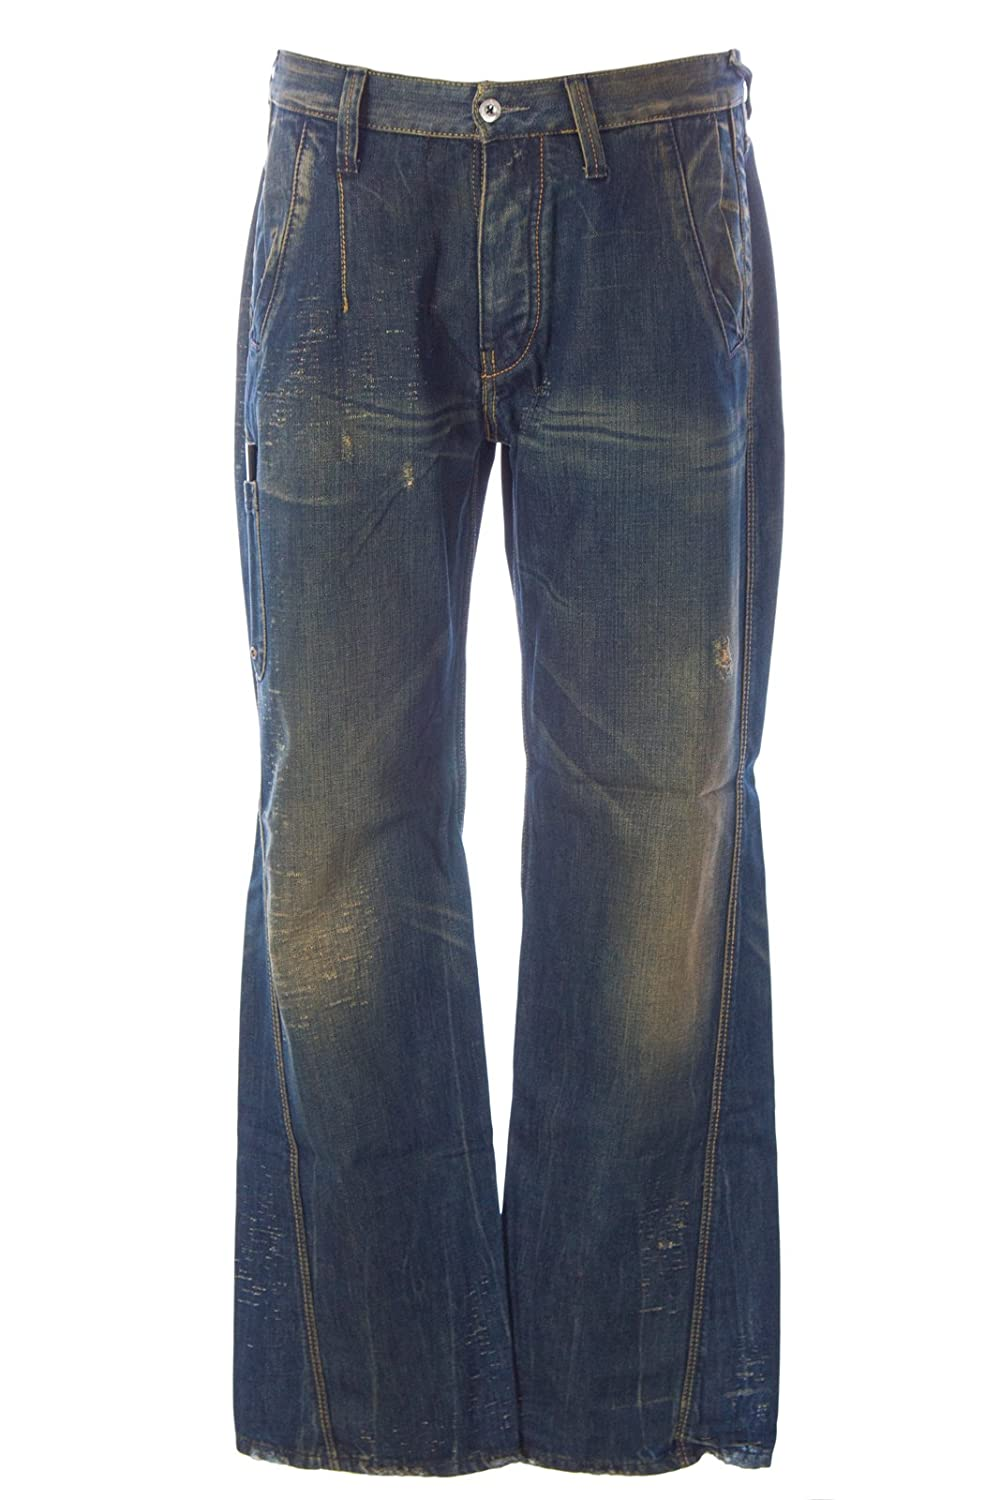 Blue Blood Men's Don Distressed Denim Button Fly Jeans